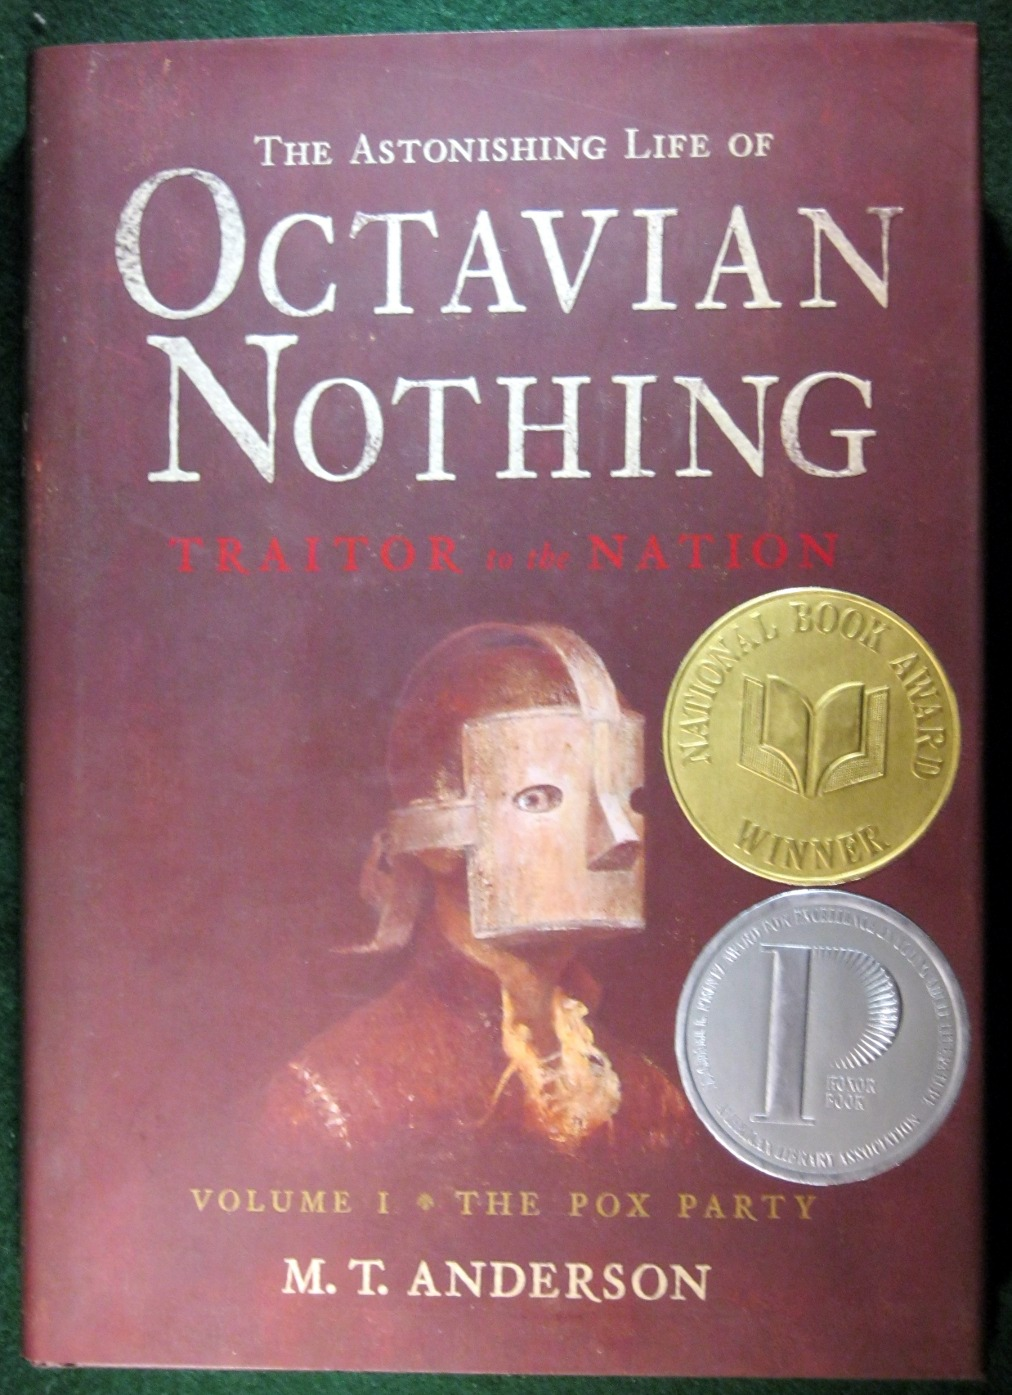 Image for THE ASTONISHING LIFE OF OCTAVIAN NOTHING, TRAITOR TO THE NATION, VOL. 1: THE POX PARTY